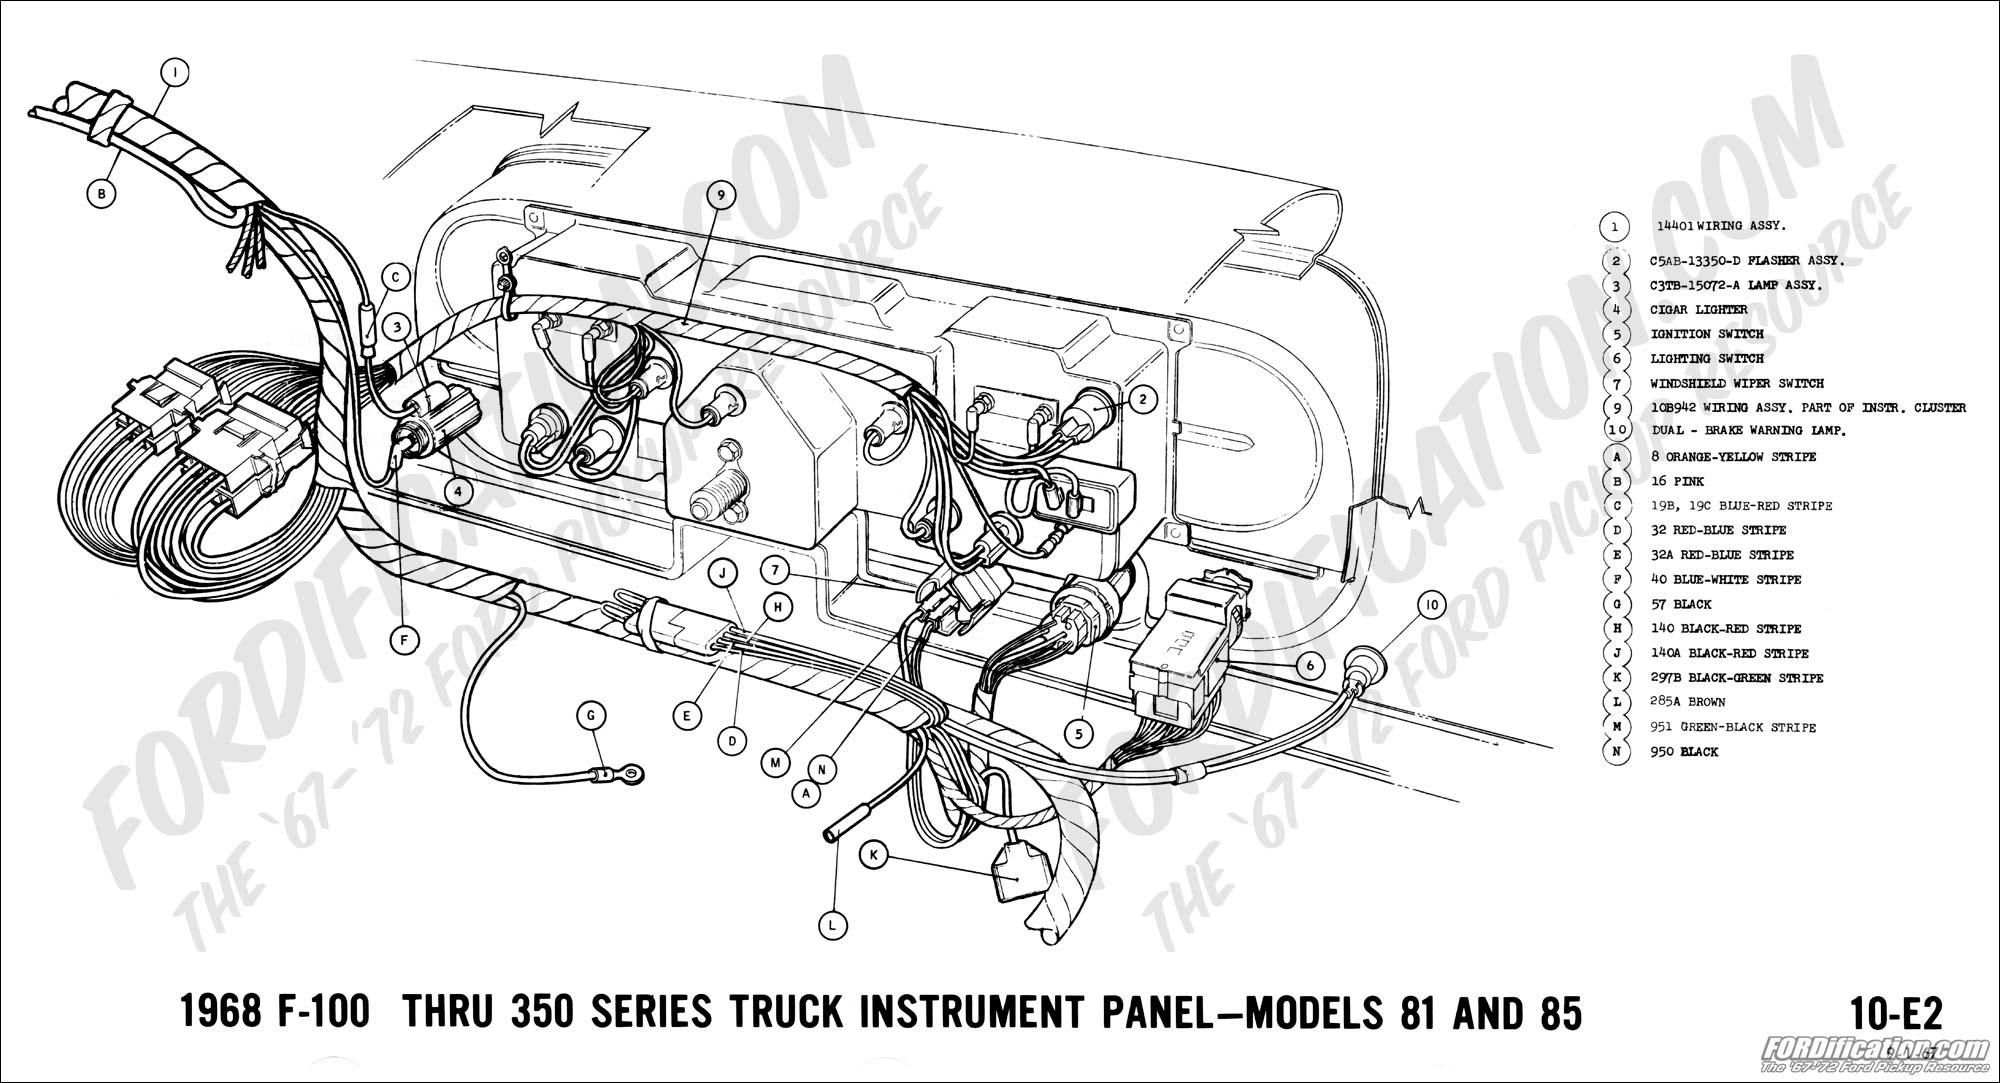 72 Ford Truck Wiring Diagrams Library Lts 9000 Wire Diagram 1972 1968 F 100 Thru 350 Instrument Panel Technical